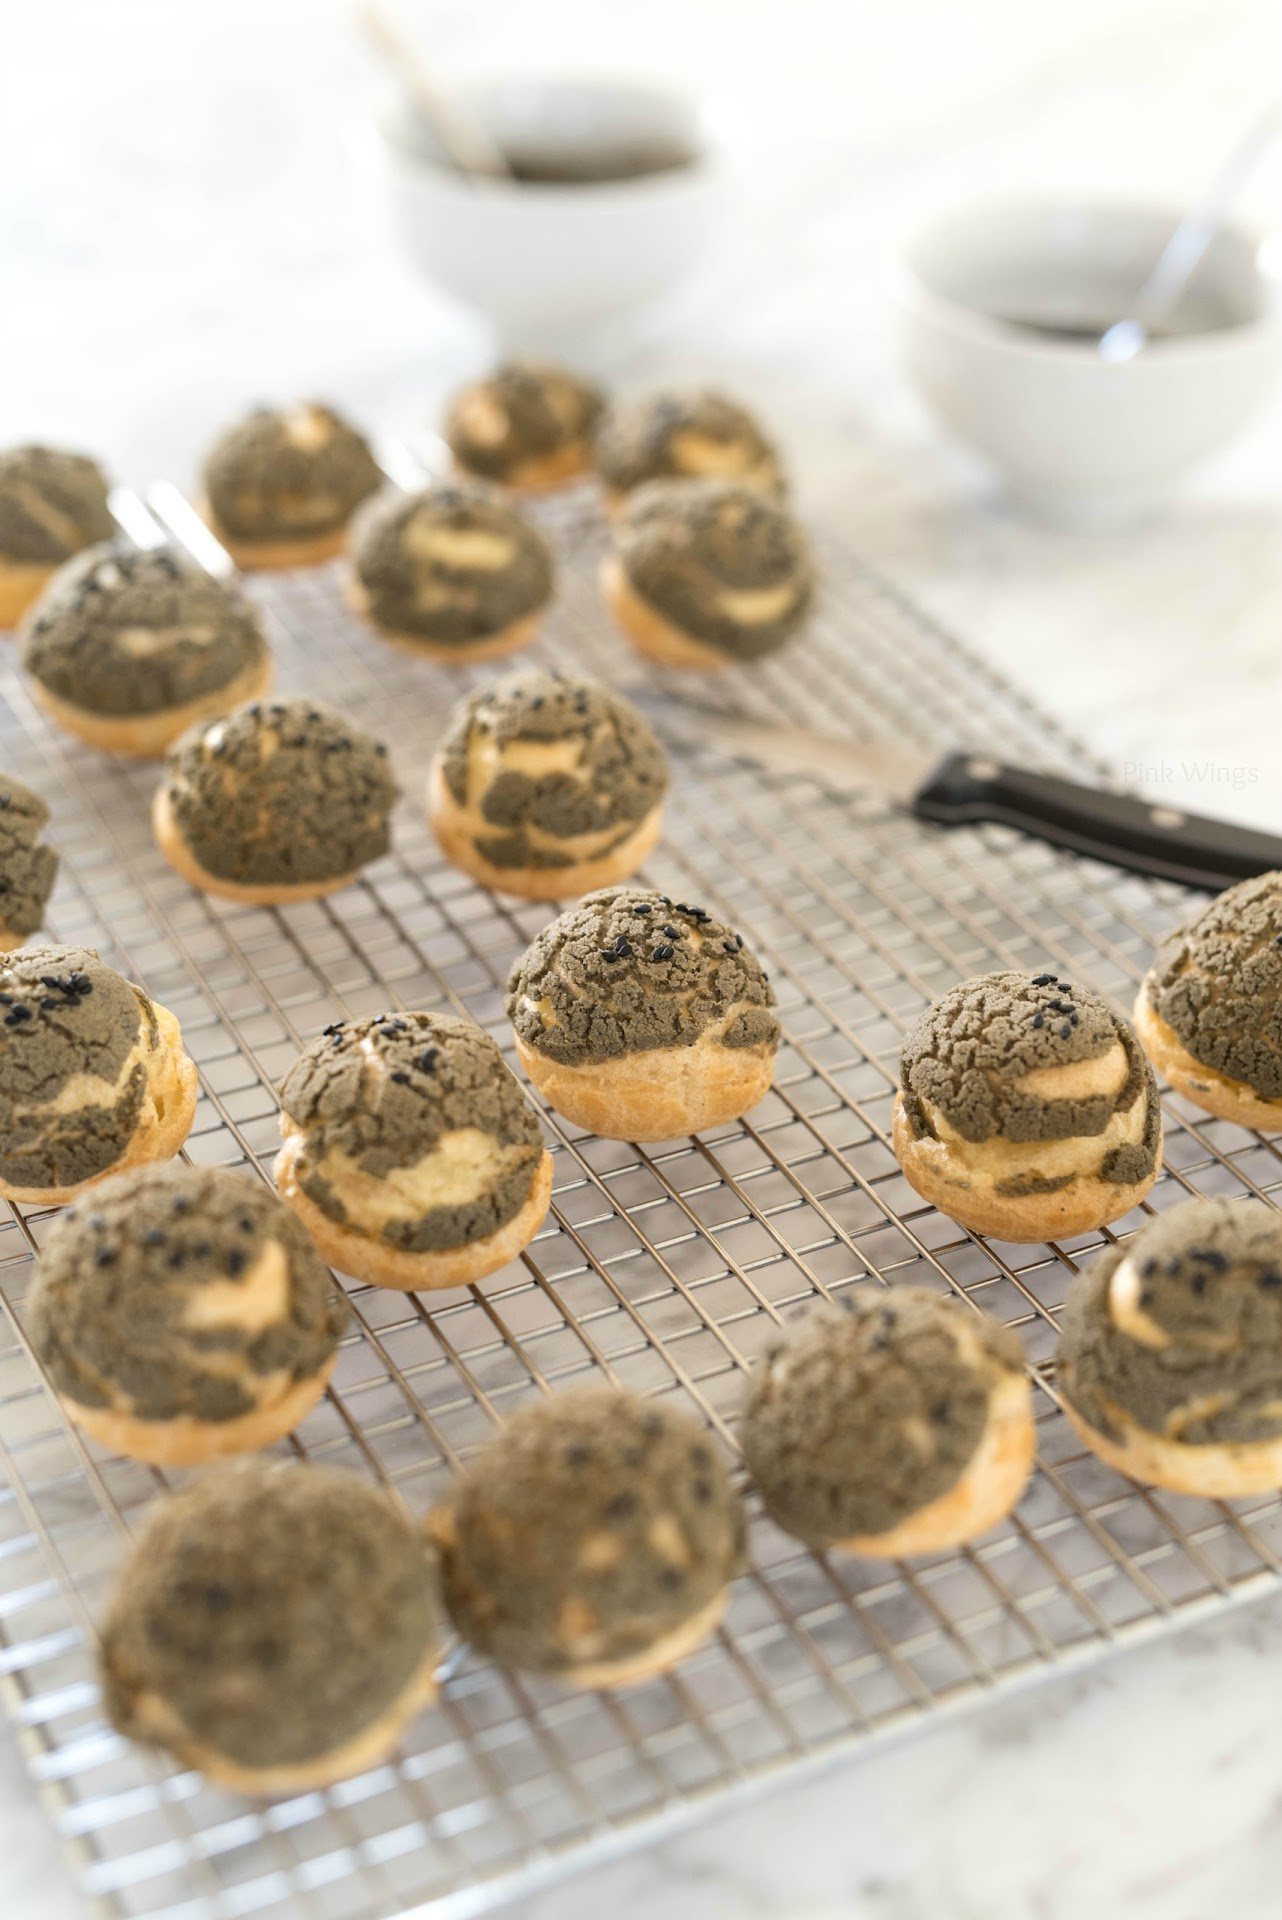 black sesame dessert recipe, asian dessert blogger, asian food, chinese new year desserts, lunar new year food, party ideas, black cream puffs